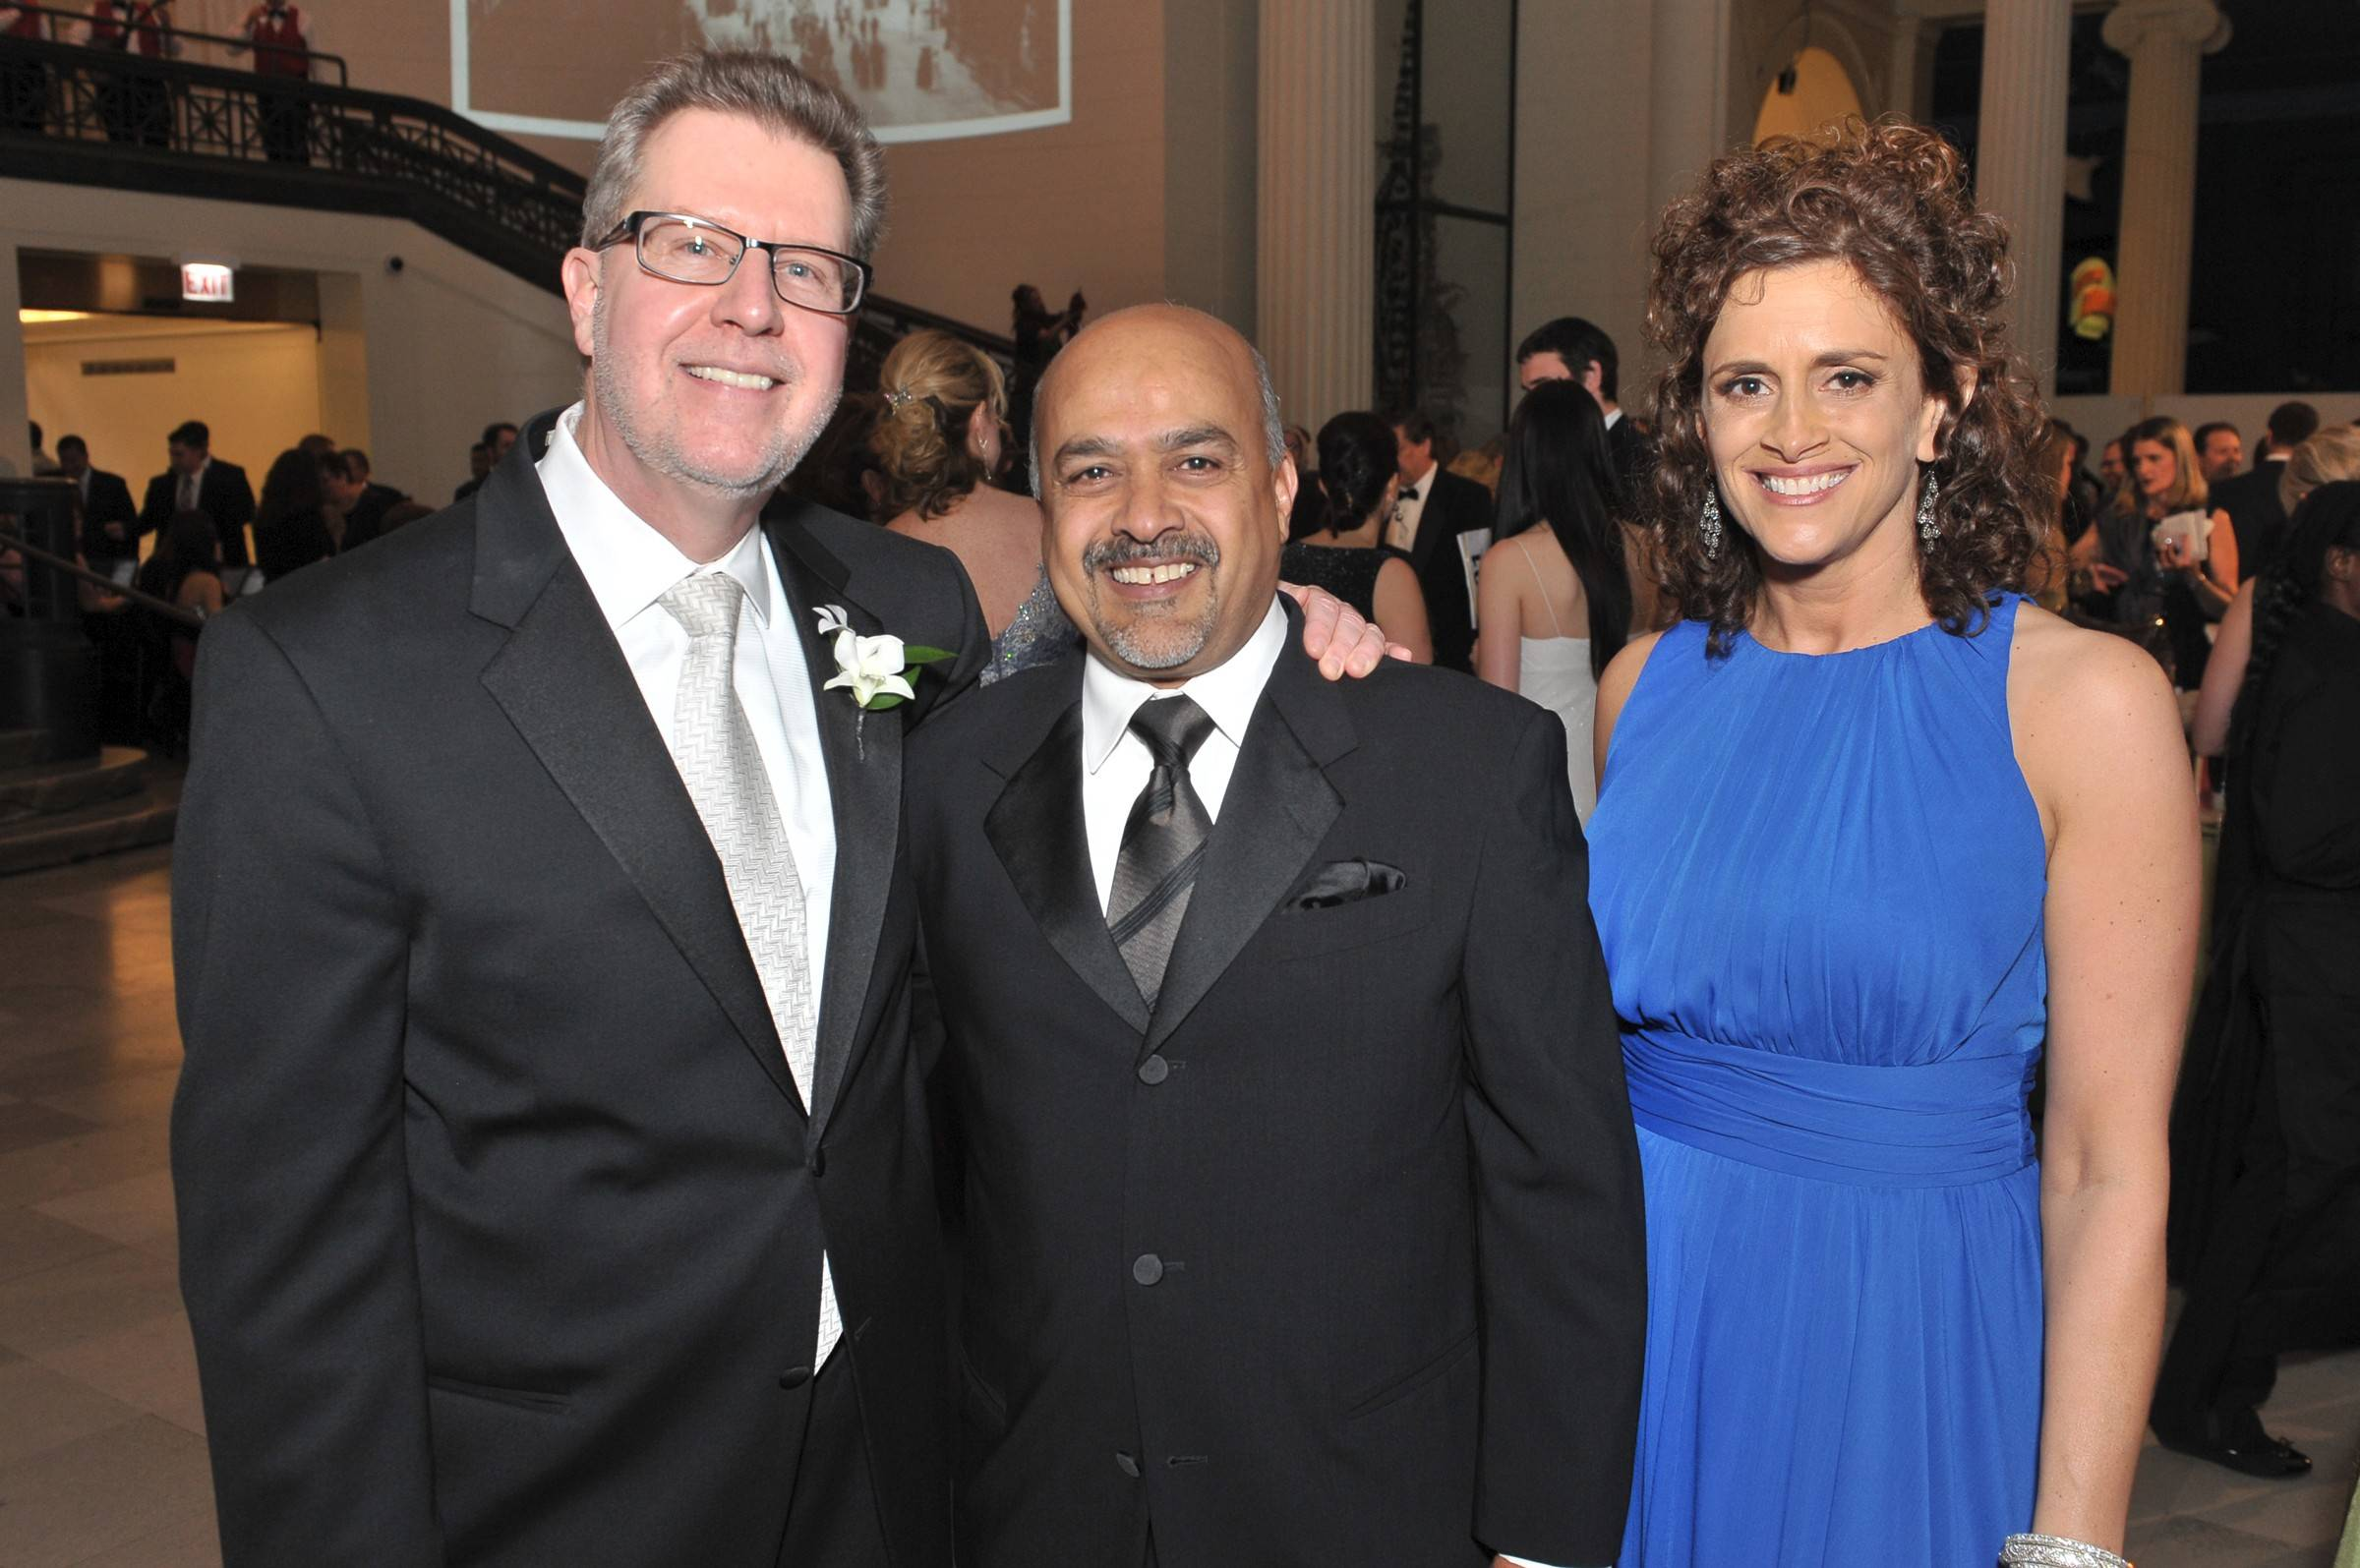 Mark Frey, Dr. Saif Nazir of Orland Park, who is also president of MEA division of TEAMHealth, one of the Diamond Sponsors for the Alexian Brothers Ball, and Melanie Furlan at the Ball de Fleur on Saturday.